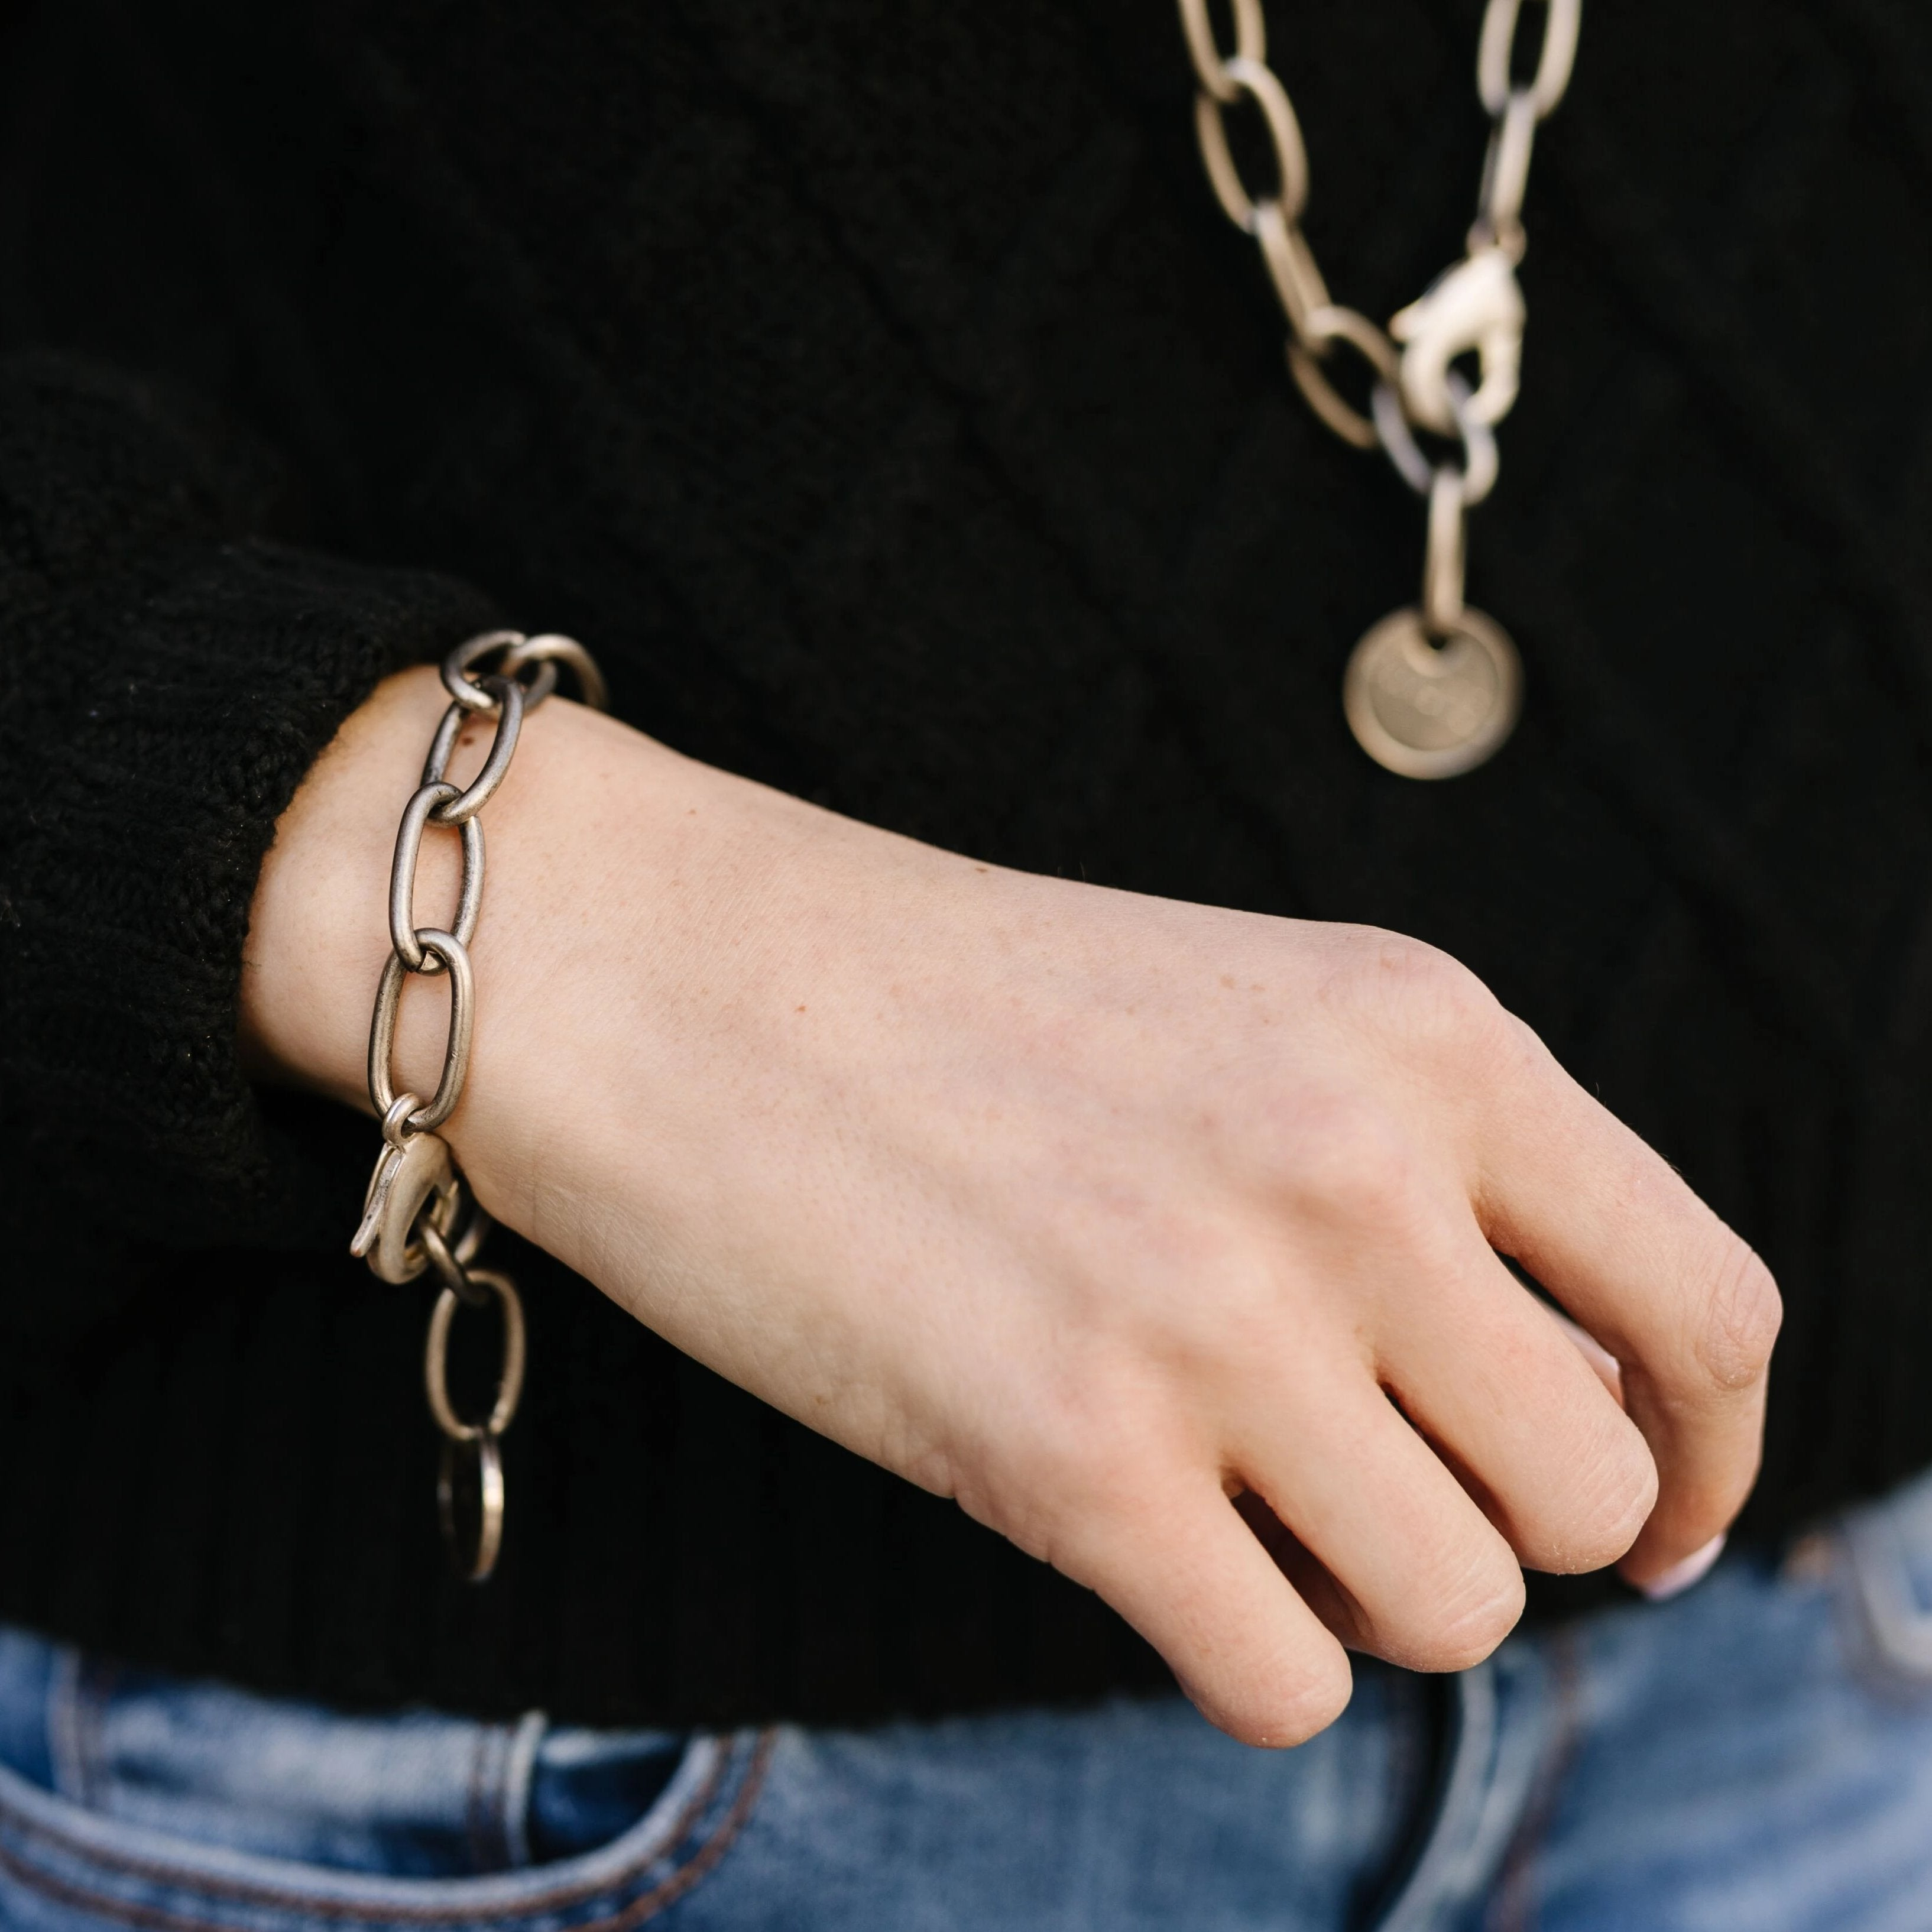 CLASSIC Bracelet - Twisted Silver Jewelry